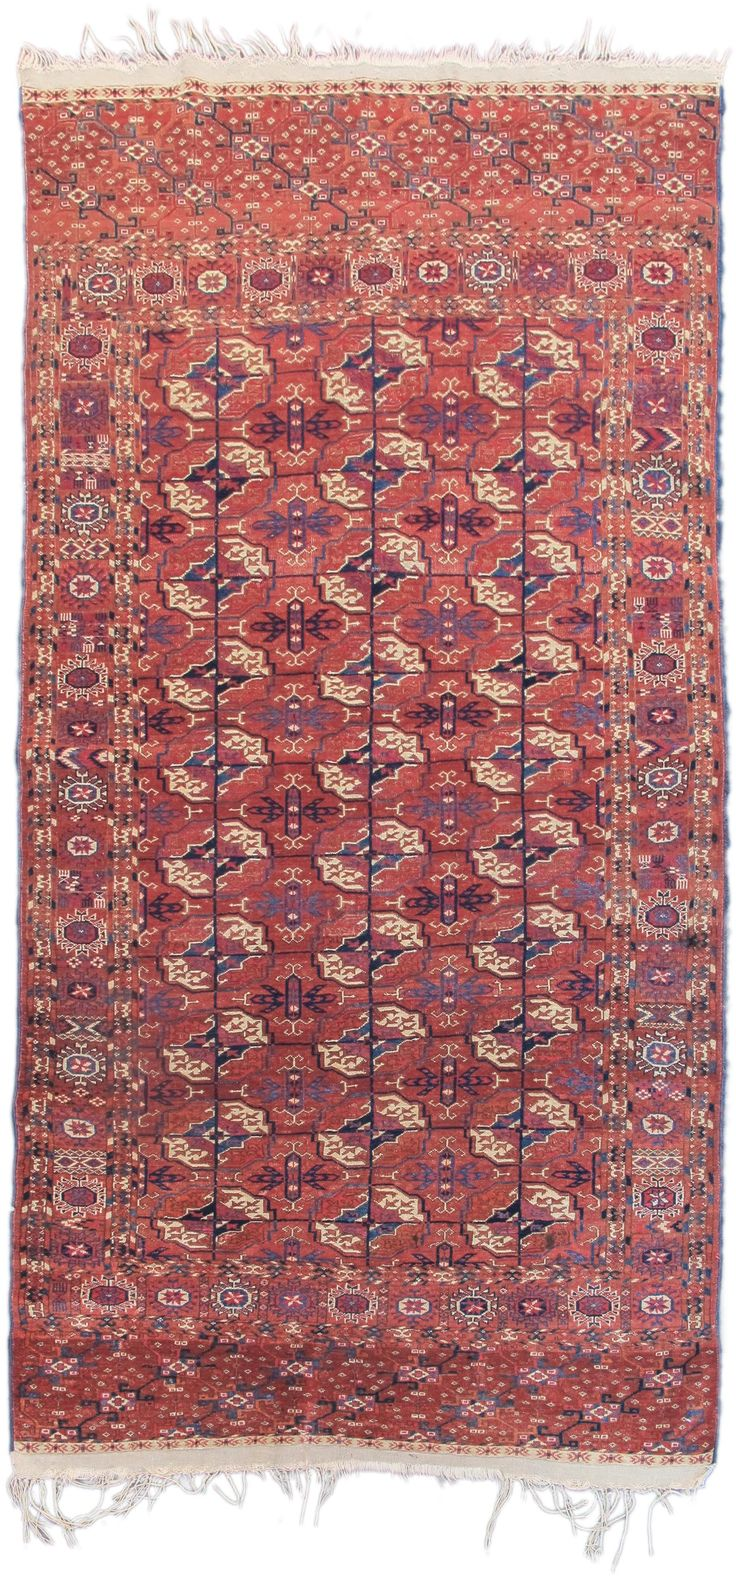 """the persian carpet essay The persian carpet essay by rhyl frith """"i live with regrets- the bittersweet loss of innocence- the red track of the moon upon the lake- the inability to return and do it again"""" (john geddes, a familiar rain)."""